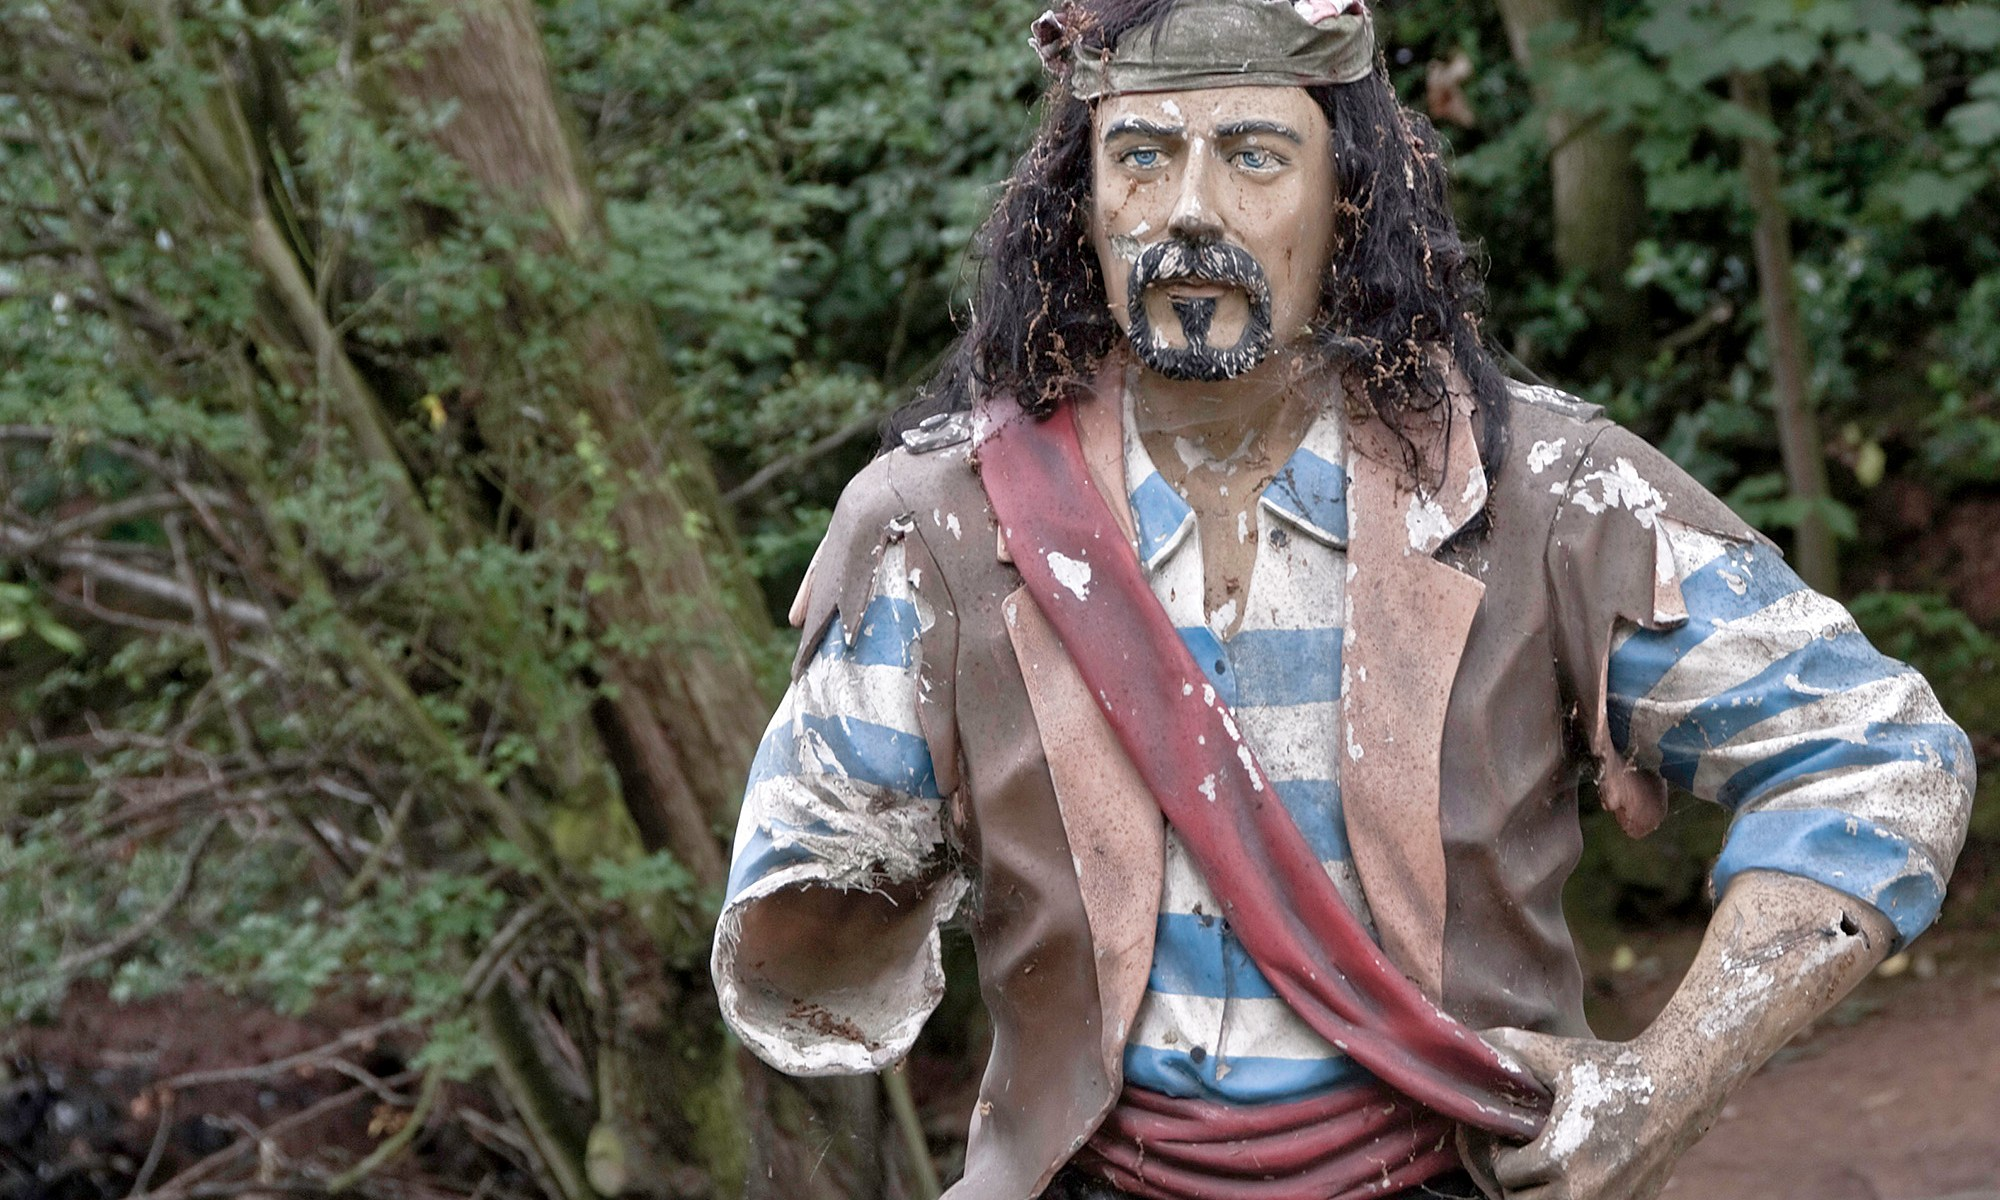 Armless Pirate Figure at Willowpool Gardens